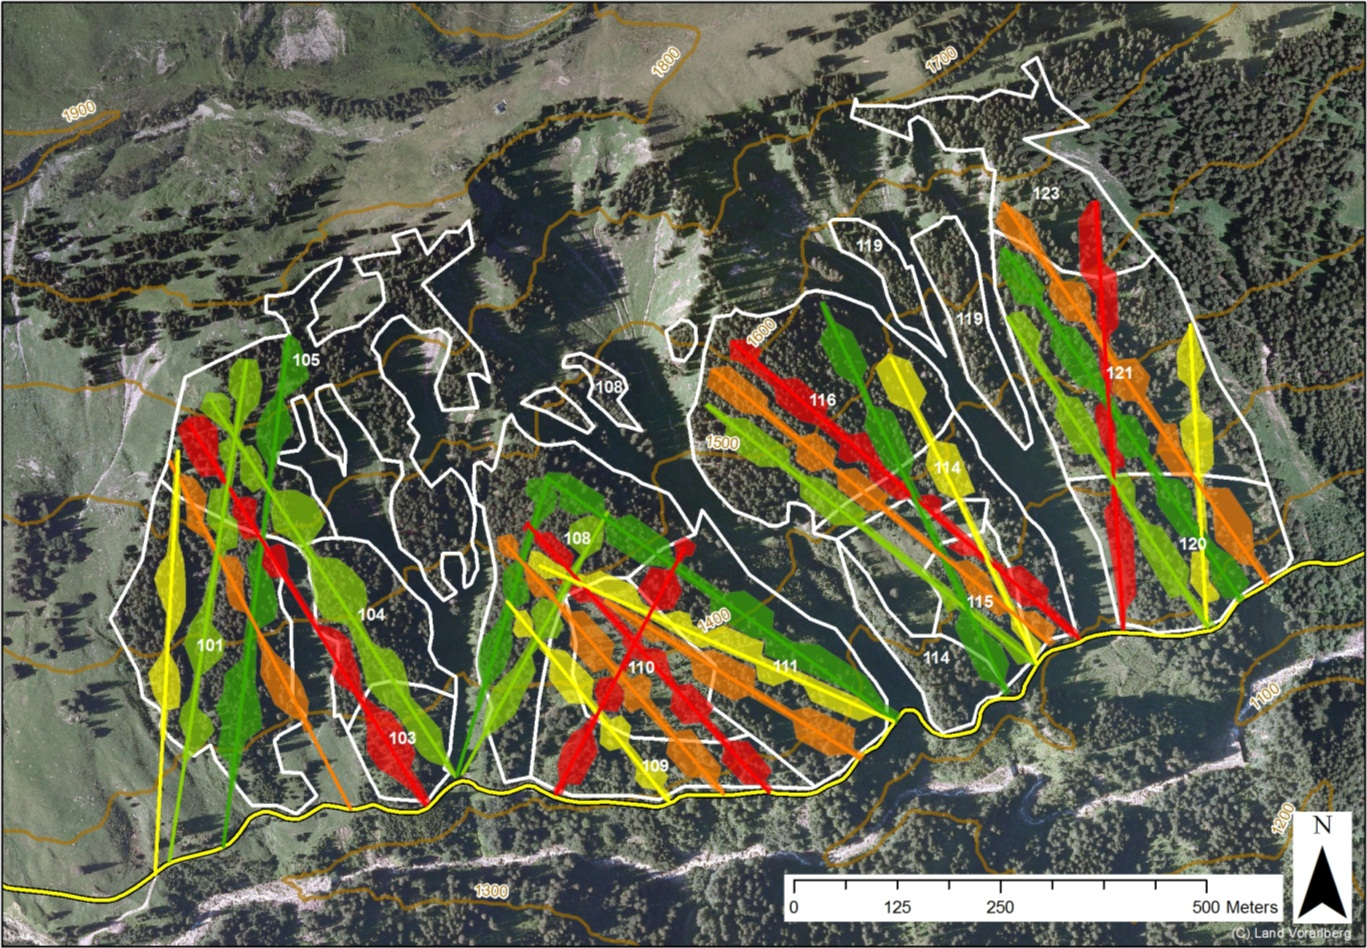 Figure MO-3: Slit and patch cuts as performed under current management as planned over 100 years for a forest compartment of ca. 70 ha. The colors of the slits cuts and skyline tracks indicate 20 year time periods from green to red (from 2010 to 2110). The stands are displayed in white and the road at the bottom of the slope in yellow. This approach results in a virtual rotation period of 250 years.